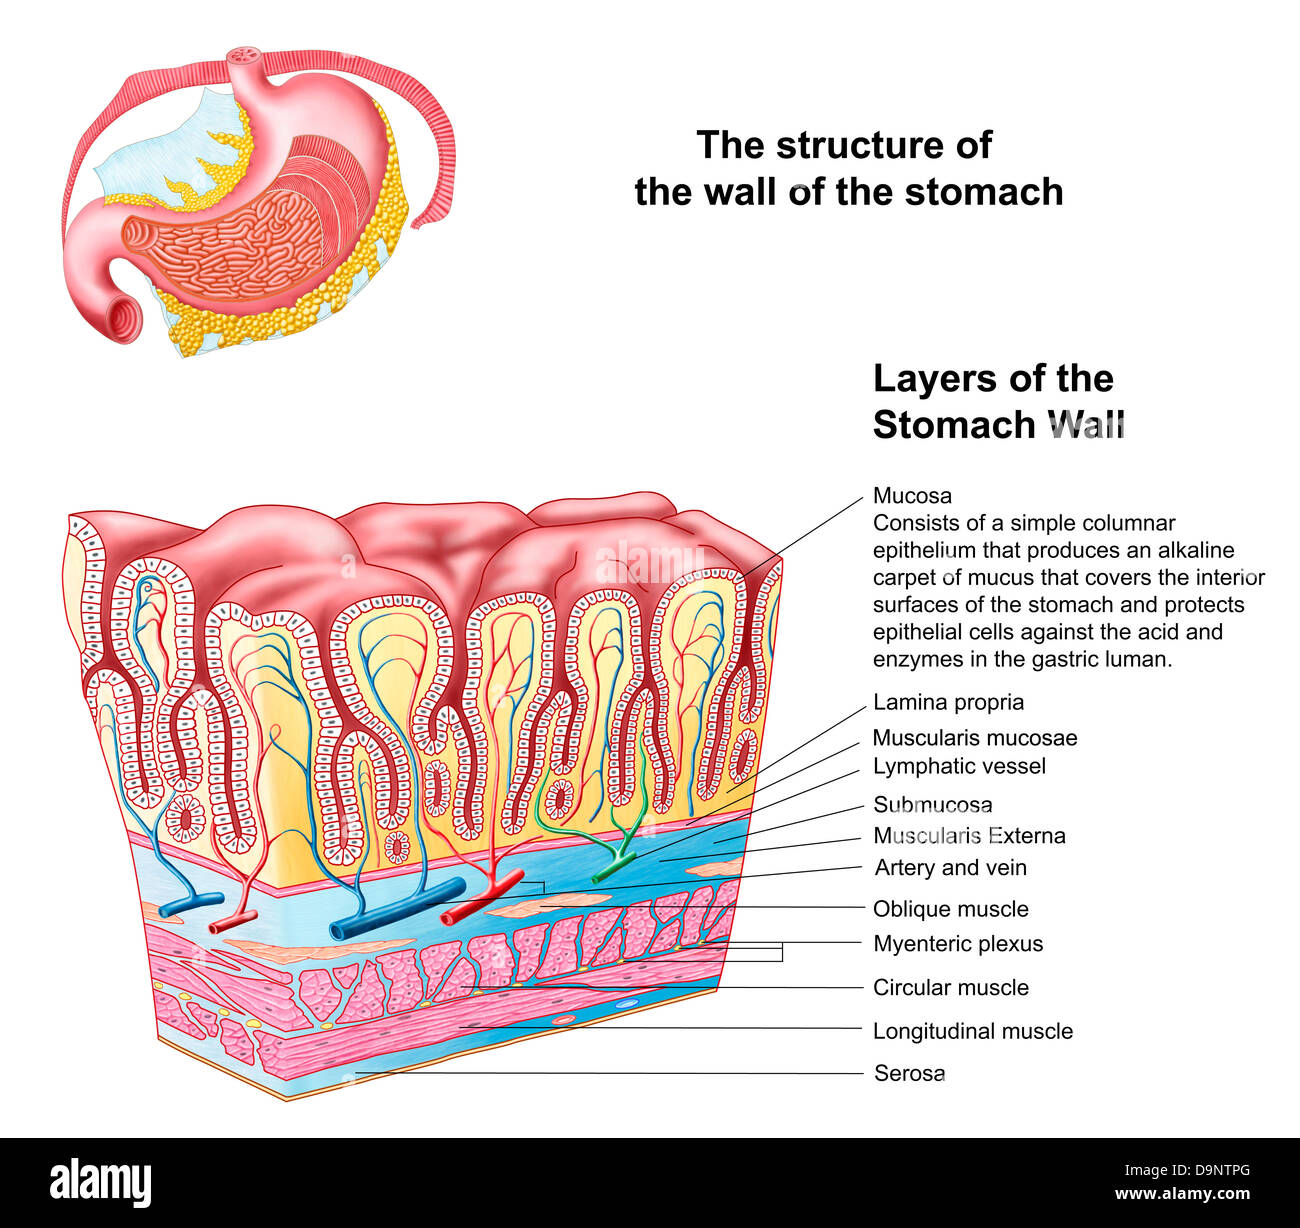 The structure of the stomach: departments, layers 24